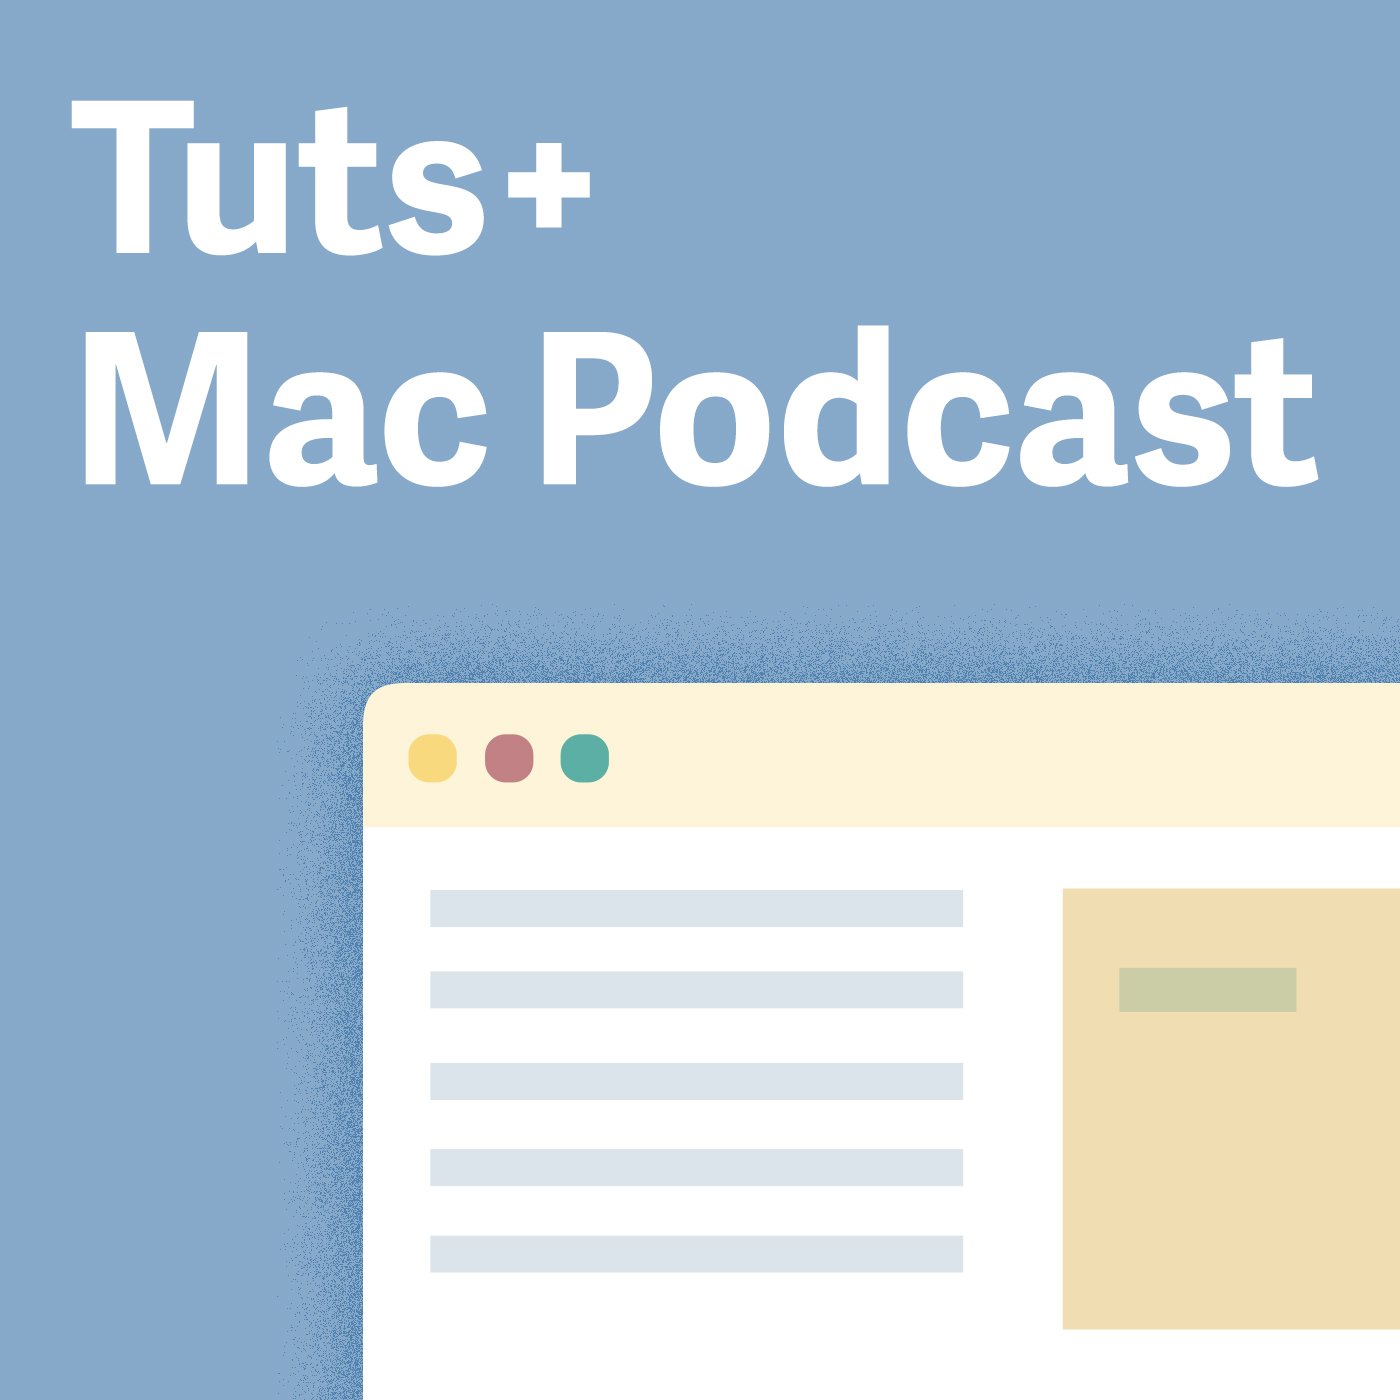 Tuts+ Mac Podcast